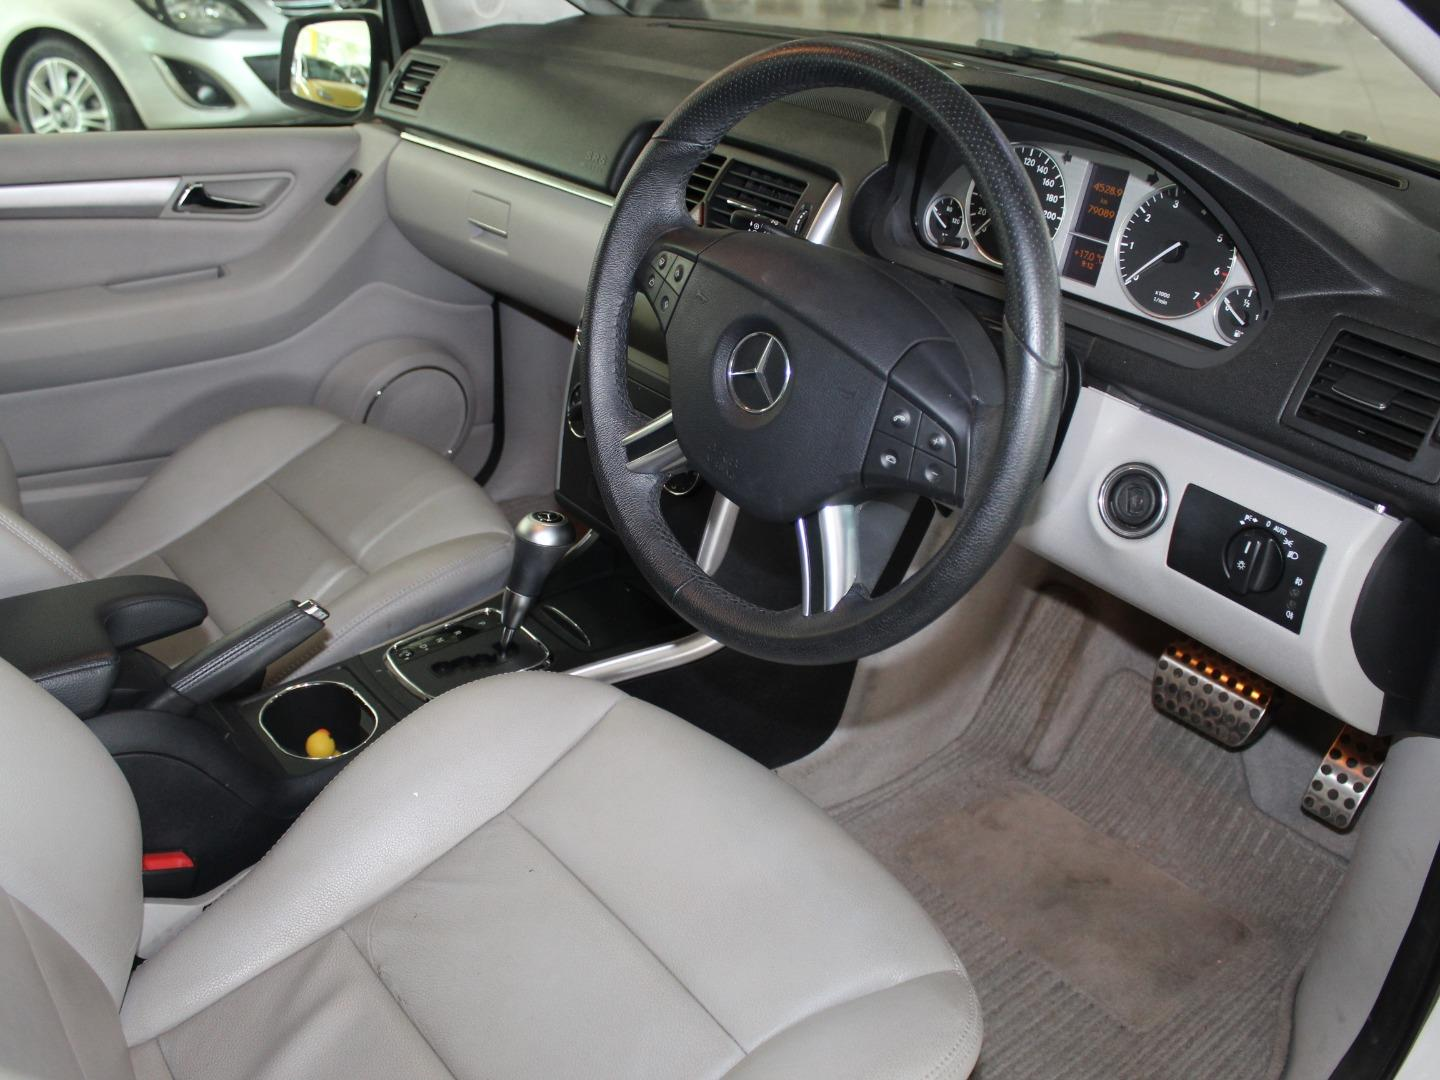 2011 Mercedes-Benz B-Class B200 Turbo Auto- Picture 5